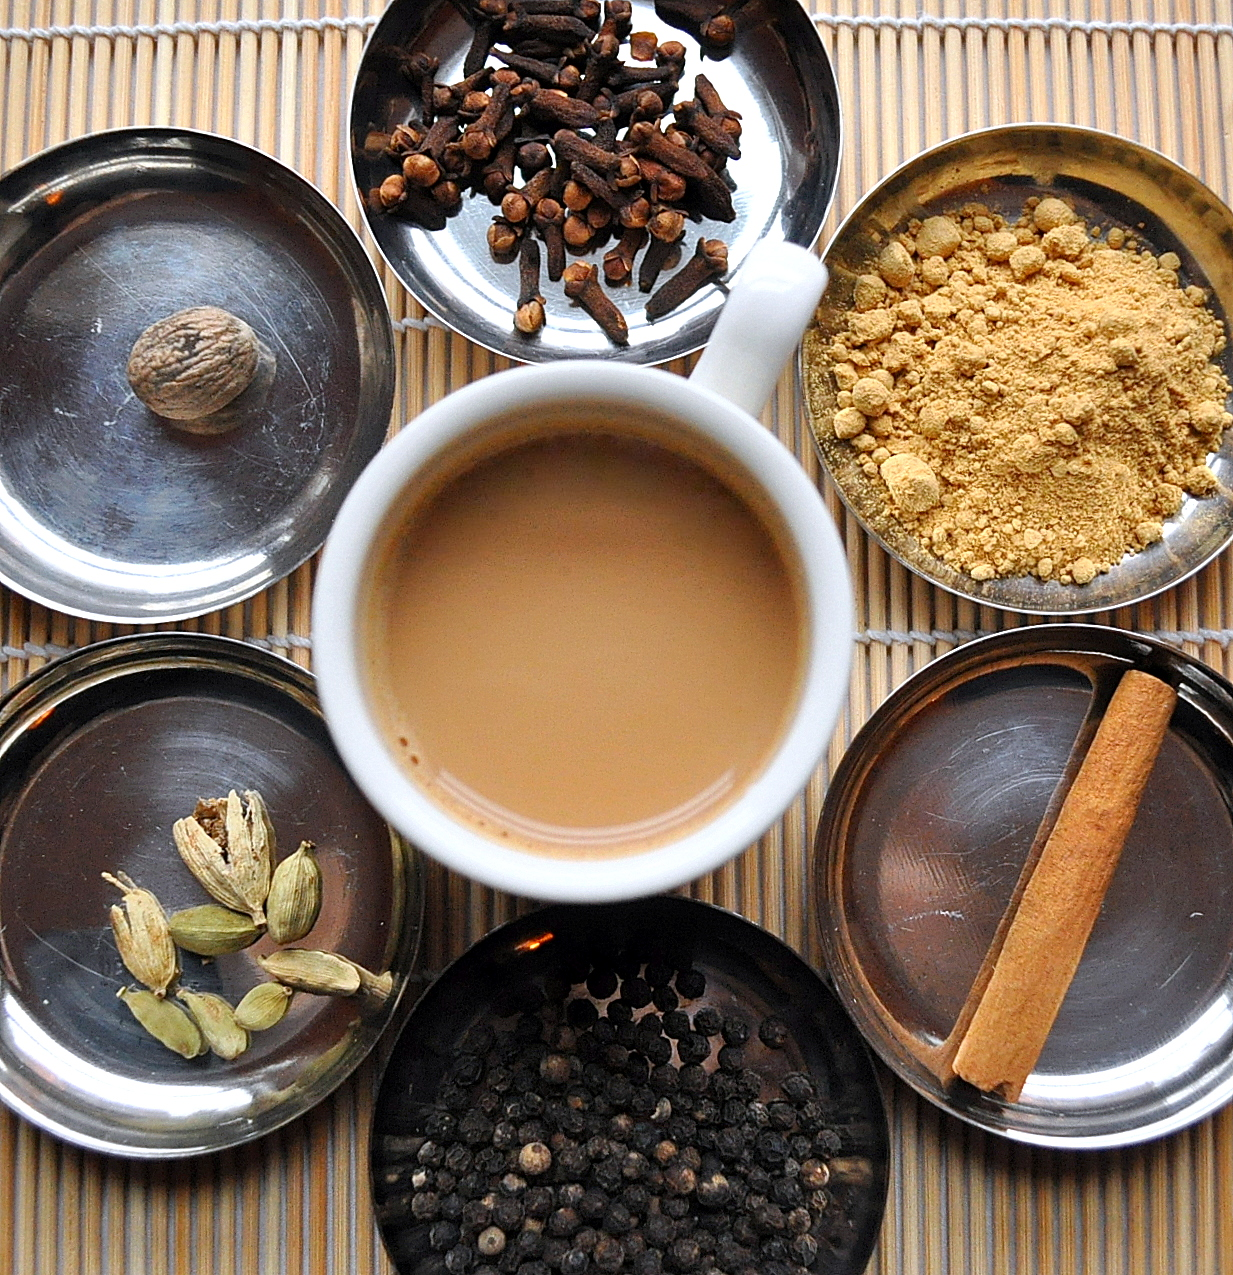 Indian tea. History and traditions